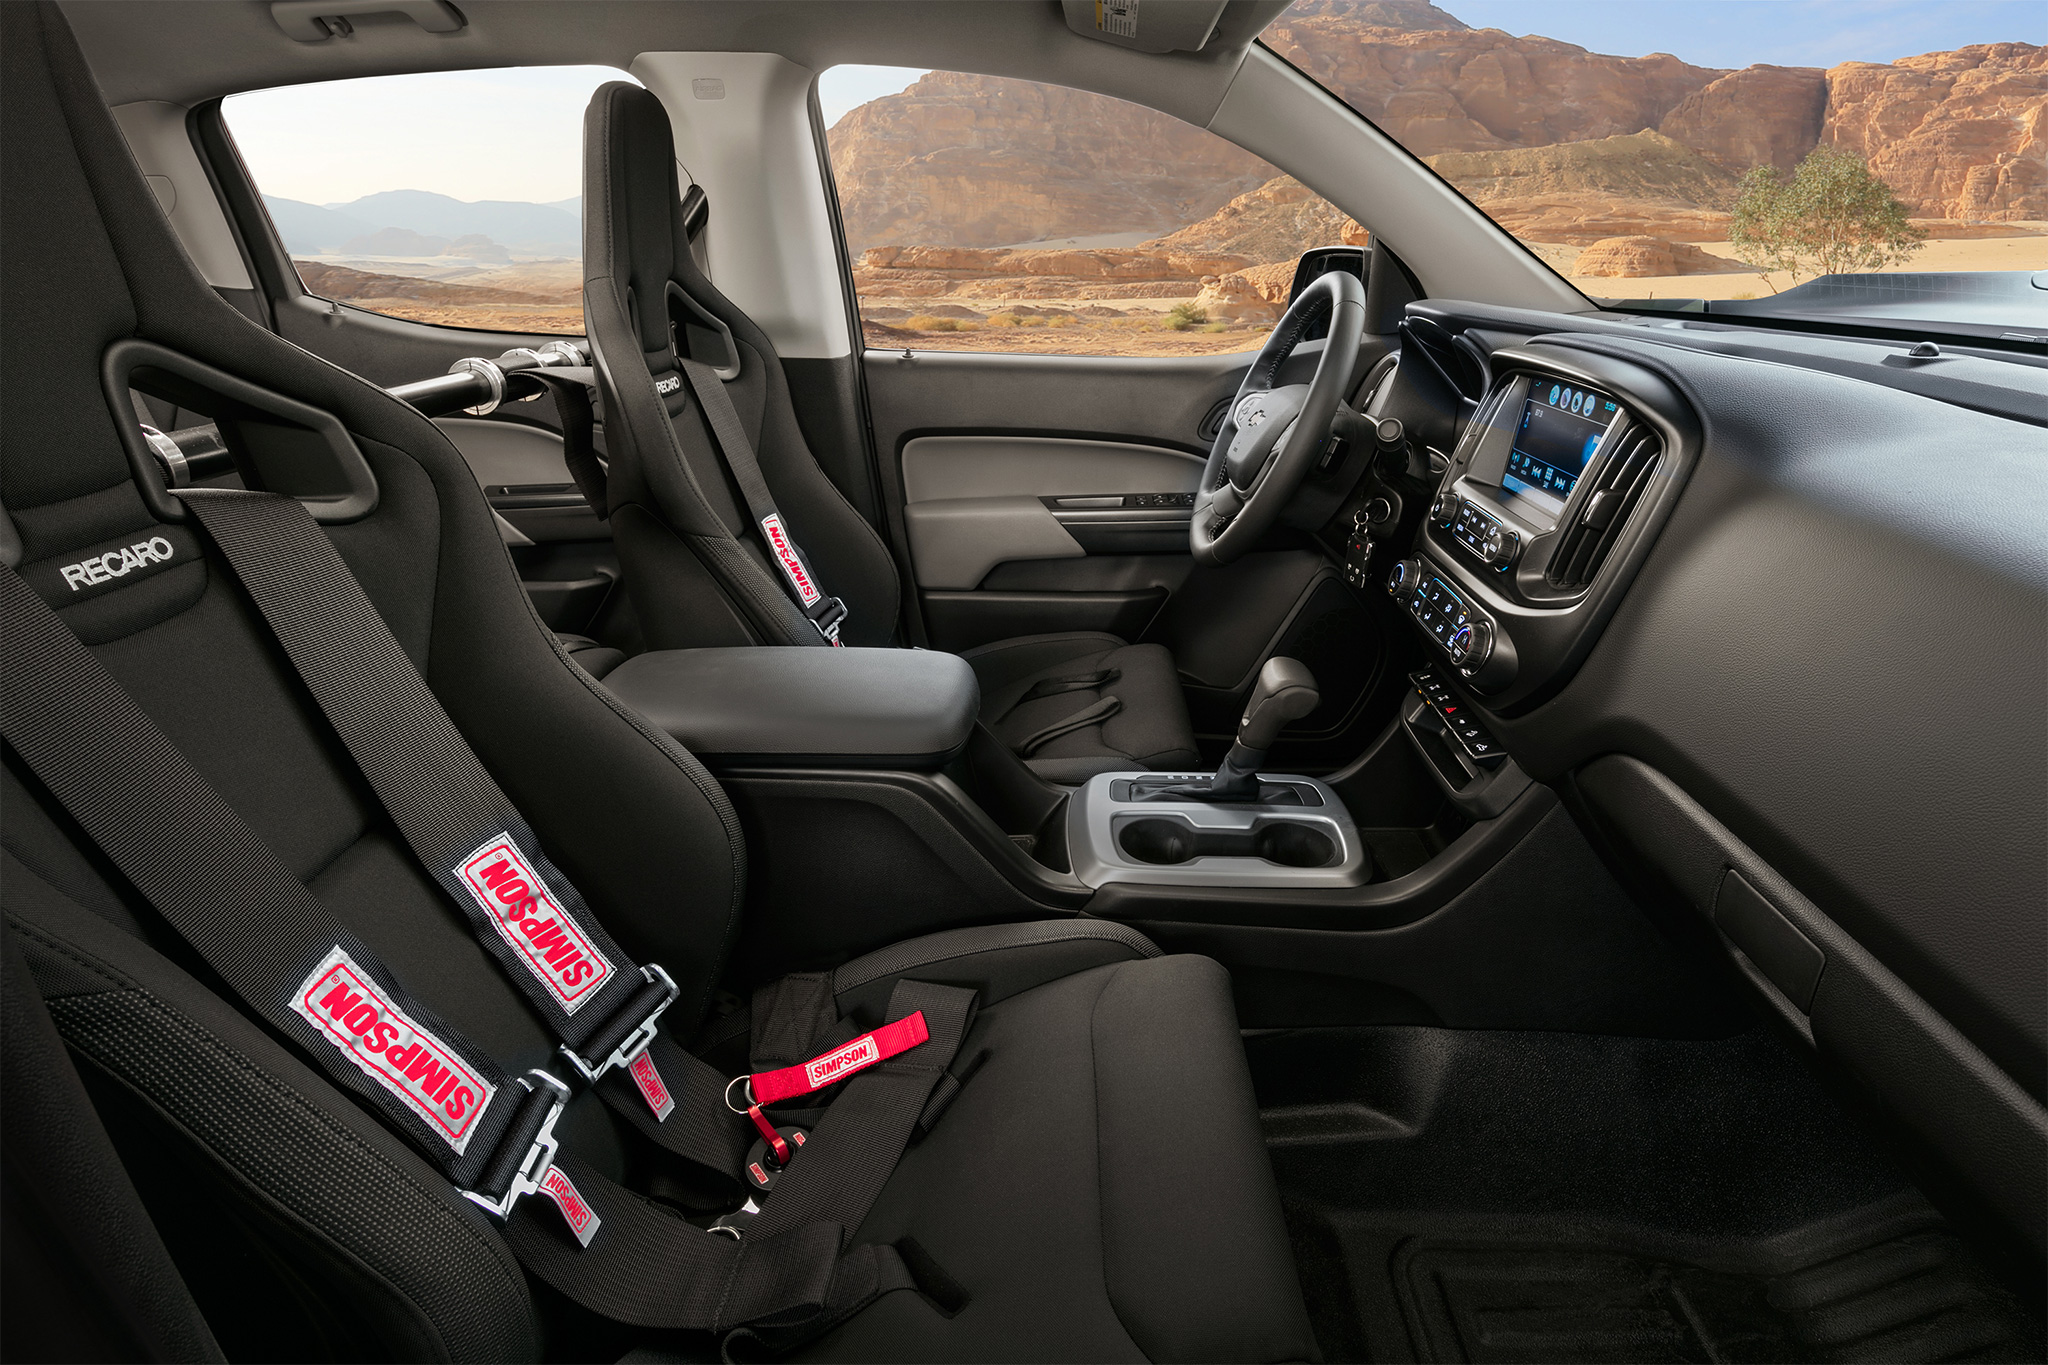 Upgraded five-point harness Photo: motortrend